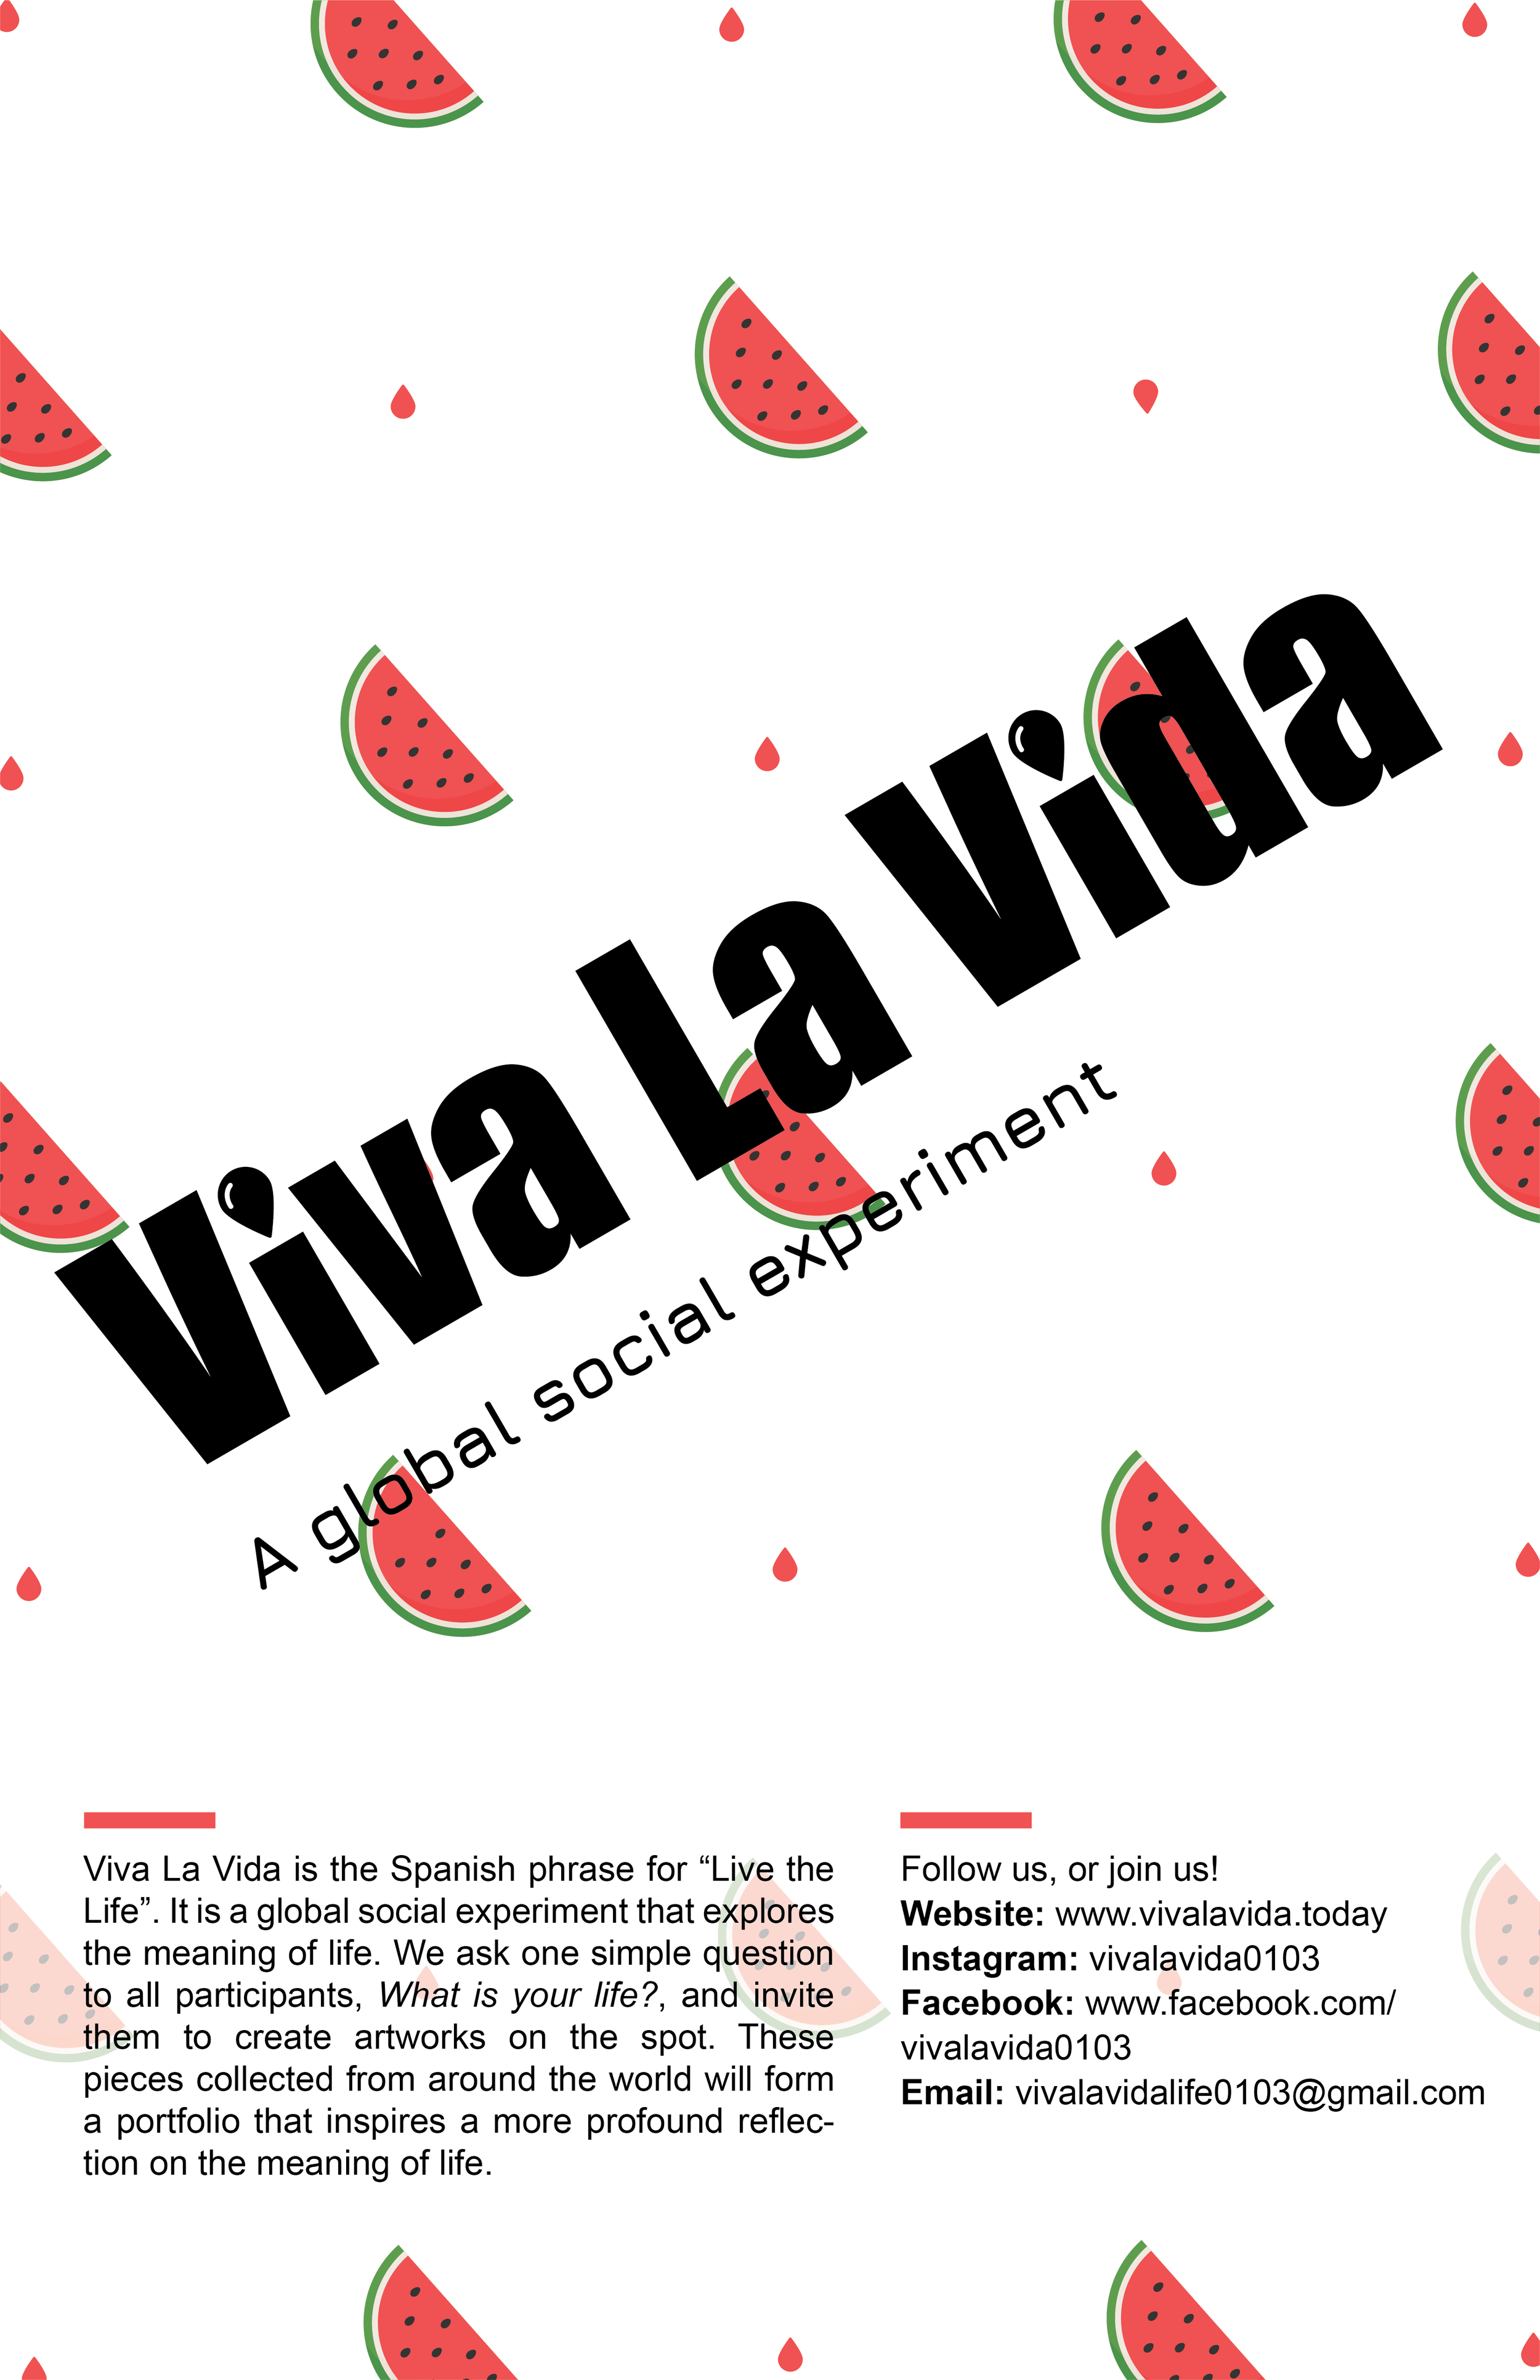 poster-watermelon01-11*17.png